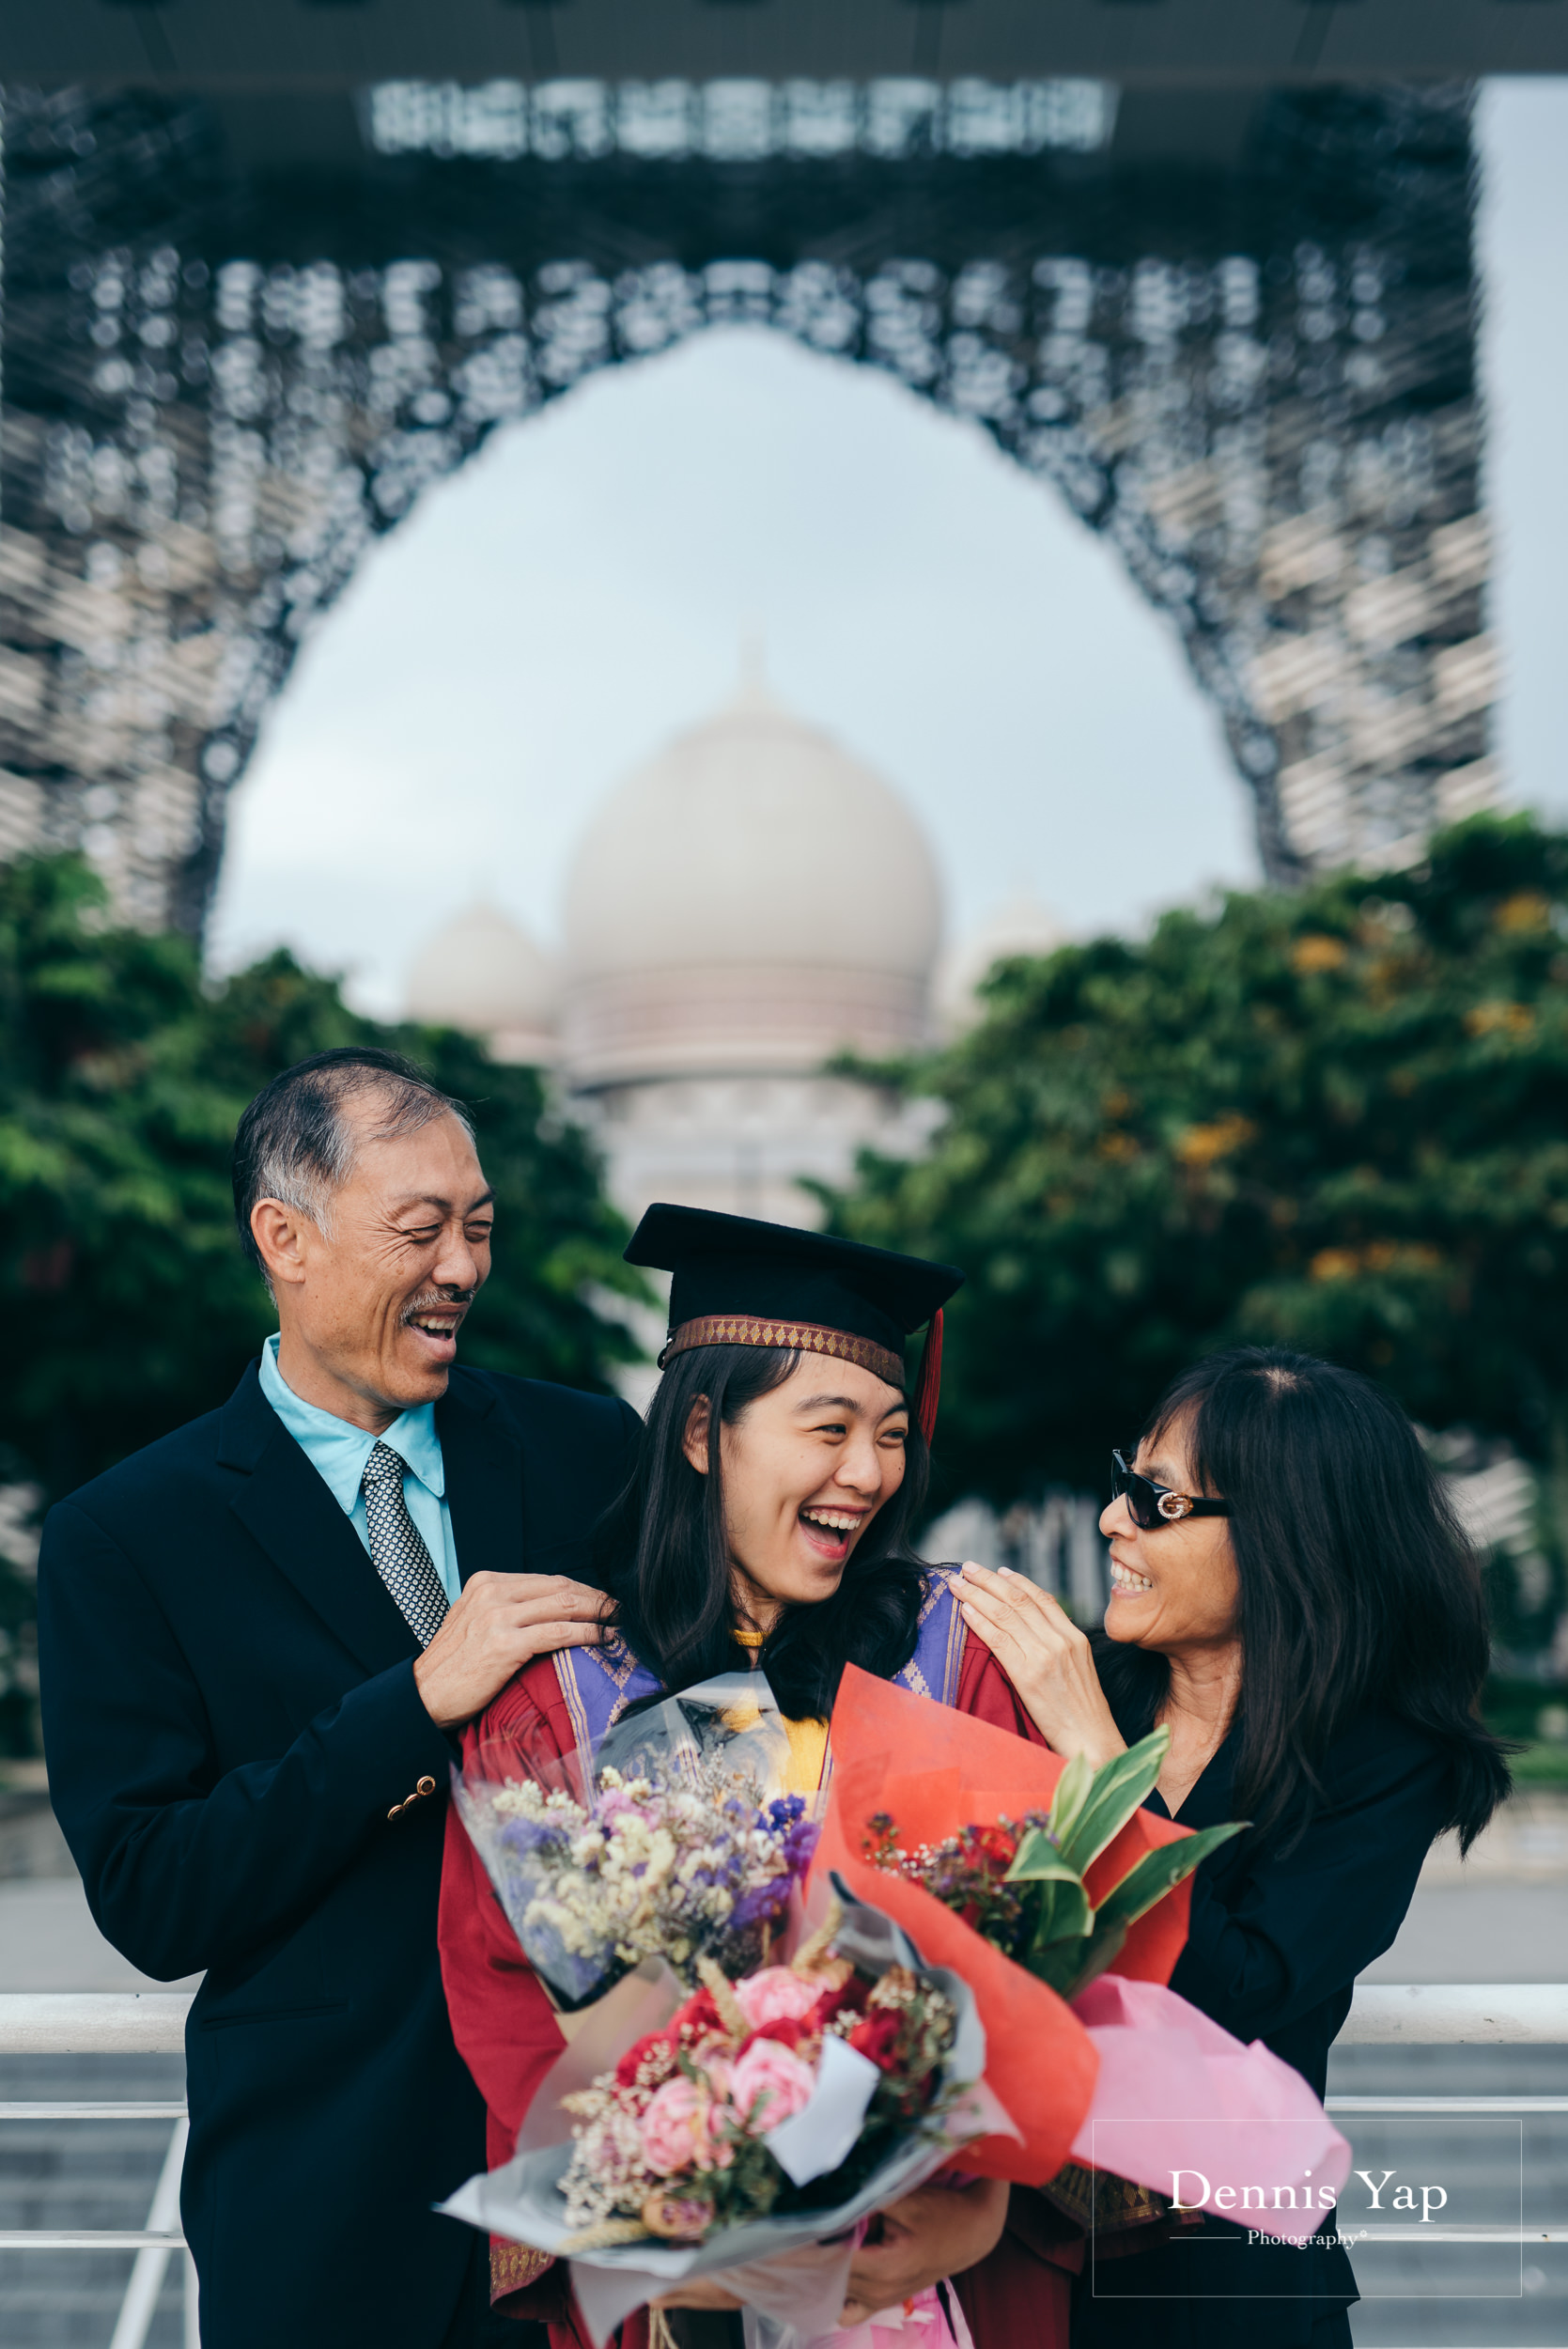 Tieng Wei graduation portrait putrajaya dennis yap photography family portraiture beloved uitm-115.jpg